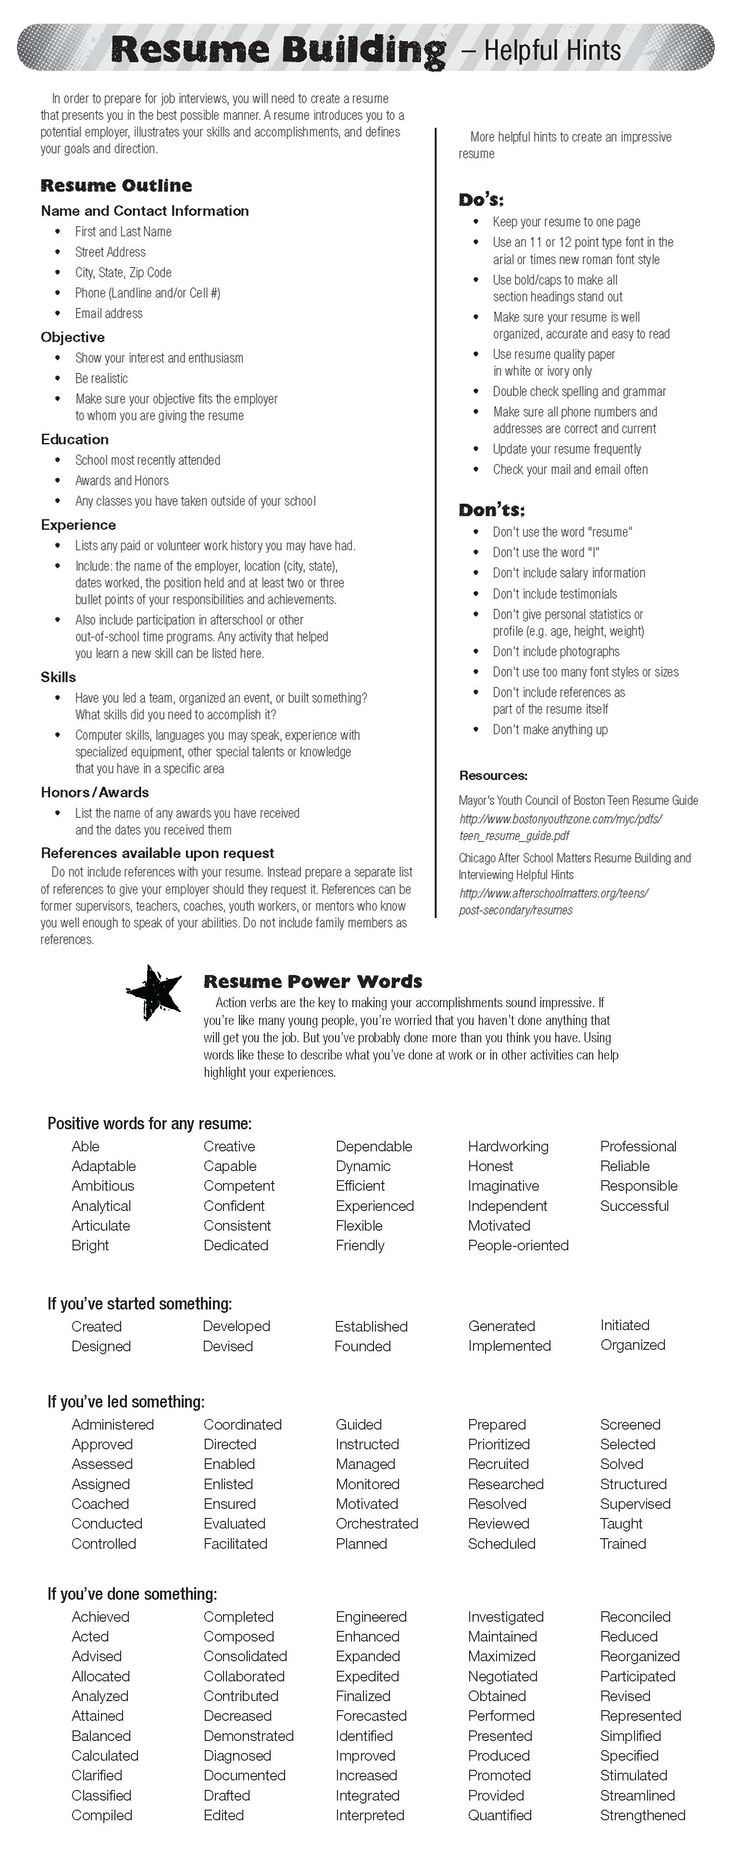 Opposenewapstandardsus  Unusual  Ideas About Resume On Pinterest  Cv Format Resume Cv And  With Exquisite  Ideas About Resume On Pinterest  Cv Format Resume Cv And Resume Templates With Attractive Targeted Resume Definition Also College Instructor Resume In Addition Cover Letter Examples For Job Resume And Customer Service Qualifications Resume As Well As Resume For Line Cook Additionally Best Objective Statement For Resume From Pinterestcom With Opposenewapstandardsus  Exquisite  Ideas About Resume On Pinterest  Cv Format Resume Cv And  With Attractive  Ideas About Resume On Pinterest  Cv Format Resume Cv And Resume Templates And Unusual Targeted Resume Definition Also College Instructor Resume In Addition Cover Letter Examples For Job Resume From Pinterestcom